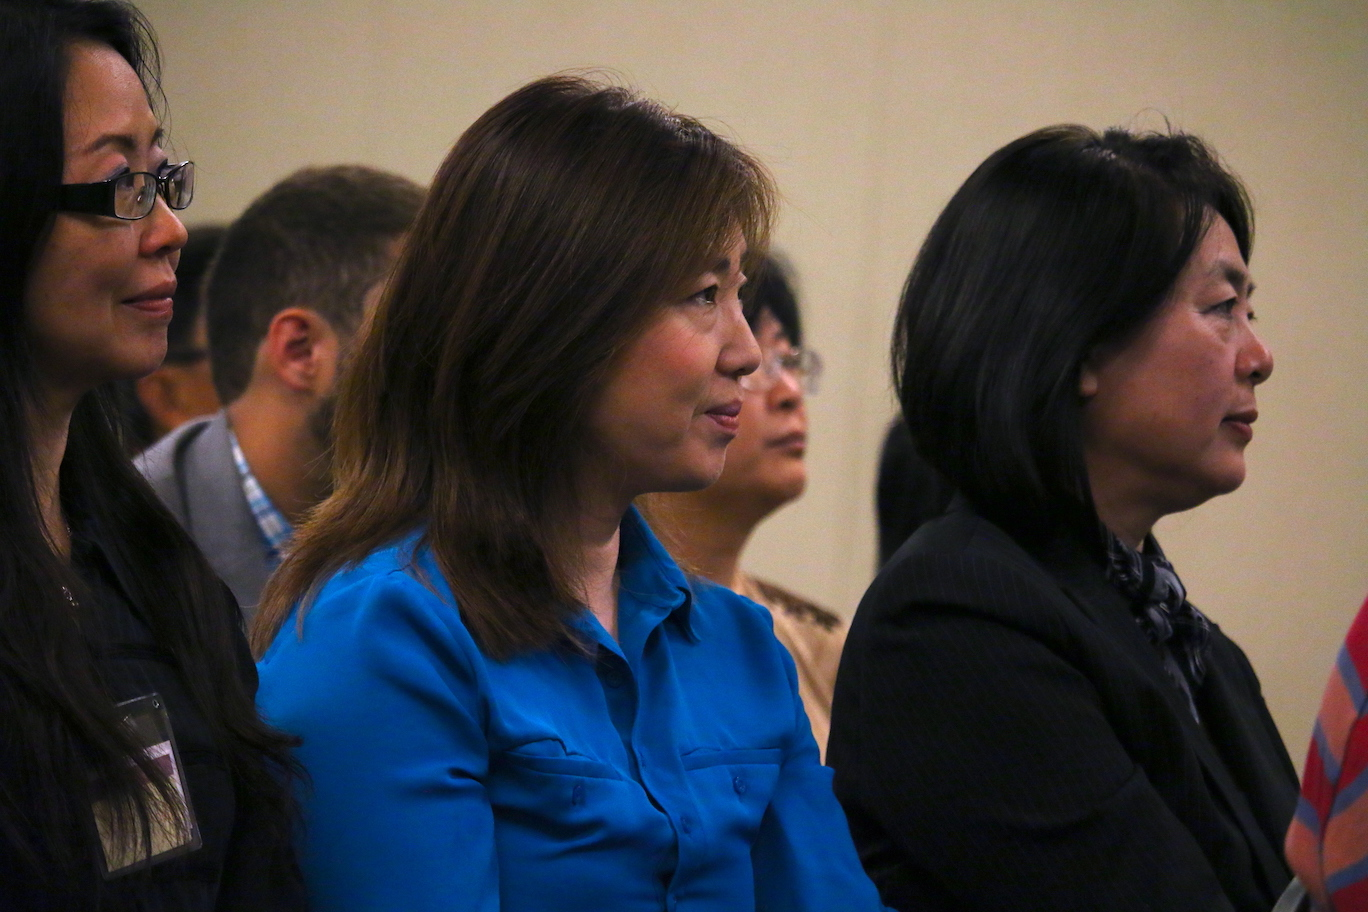 Members listening to a presentation